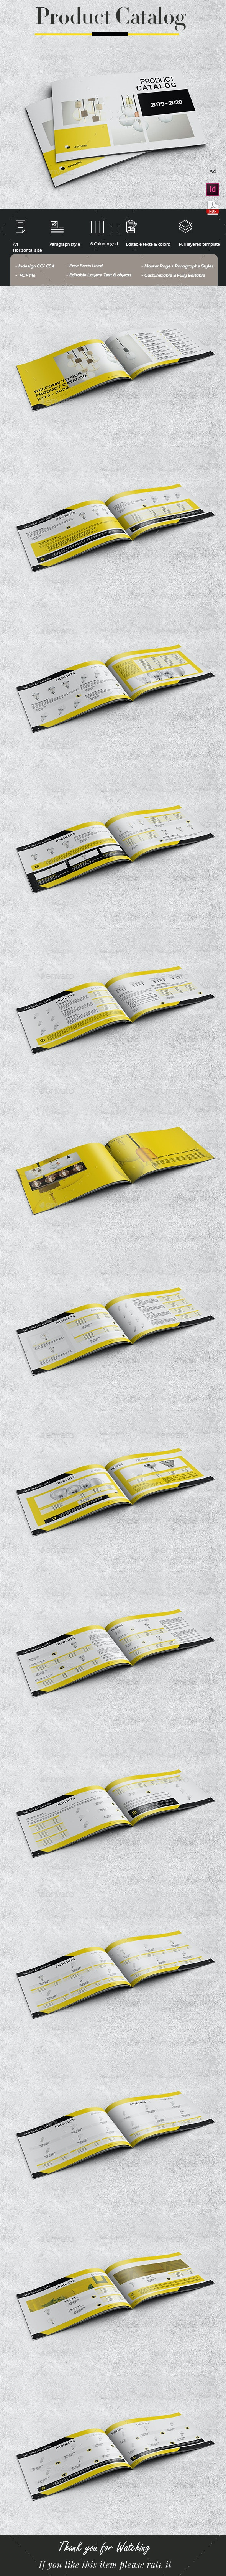 Stylish Industrial Products Catalog Horizontal - Catalogs Brochures